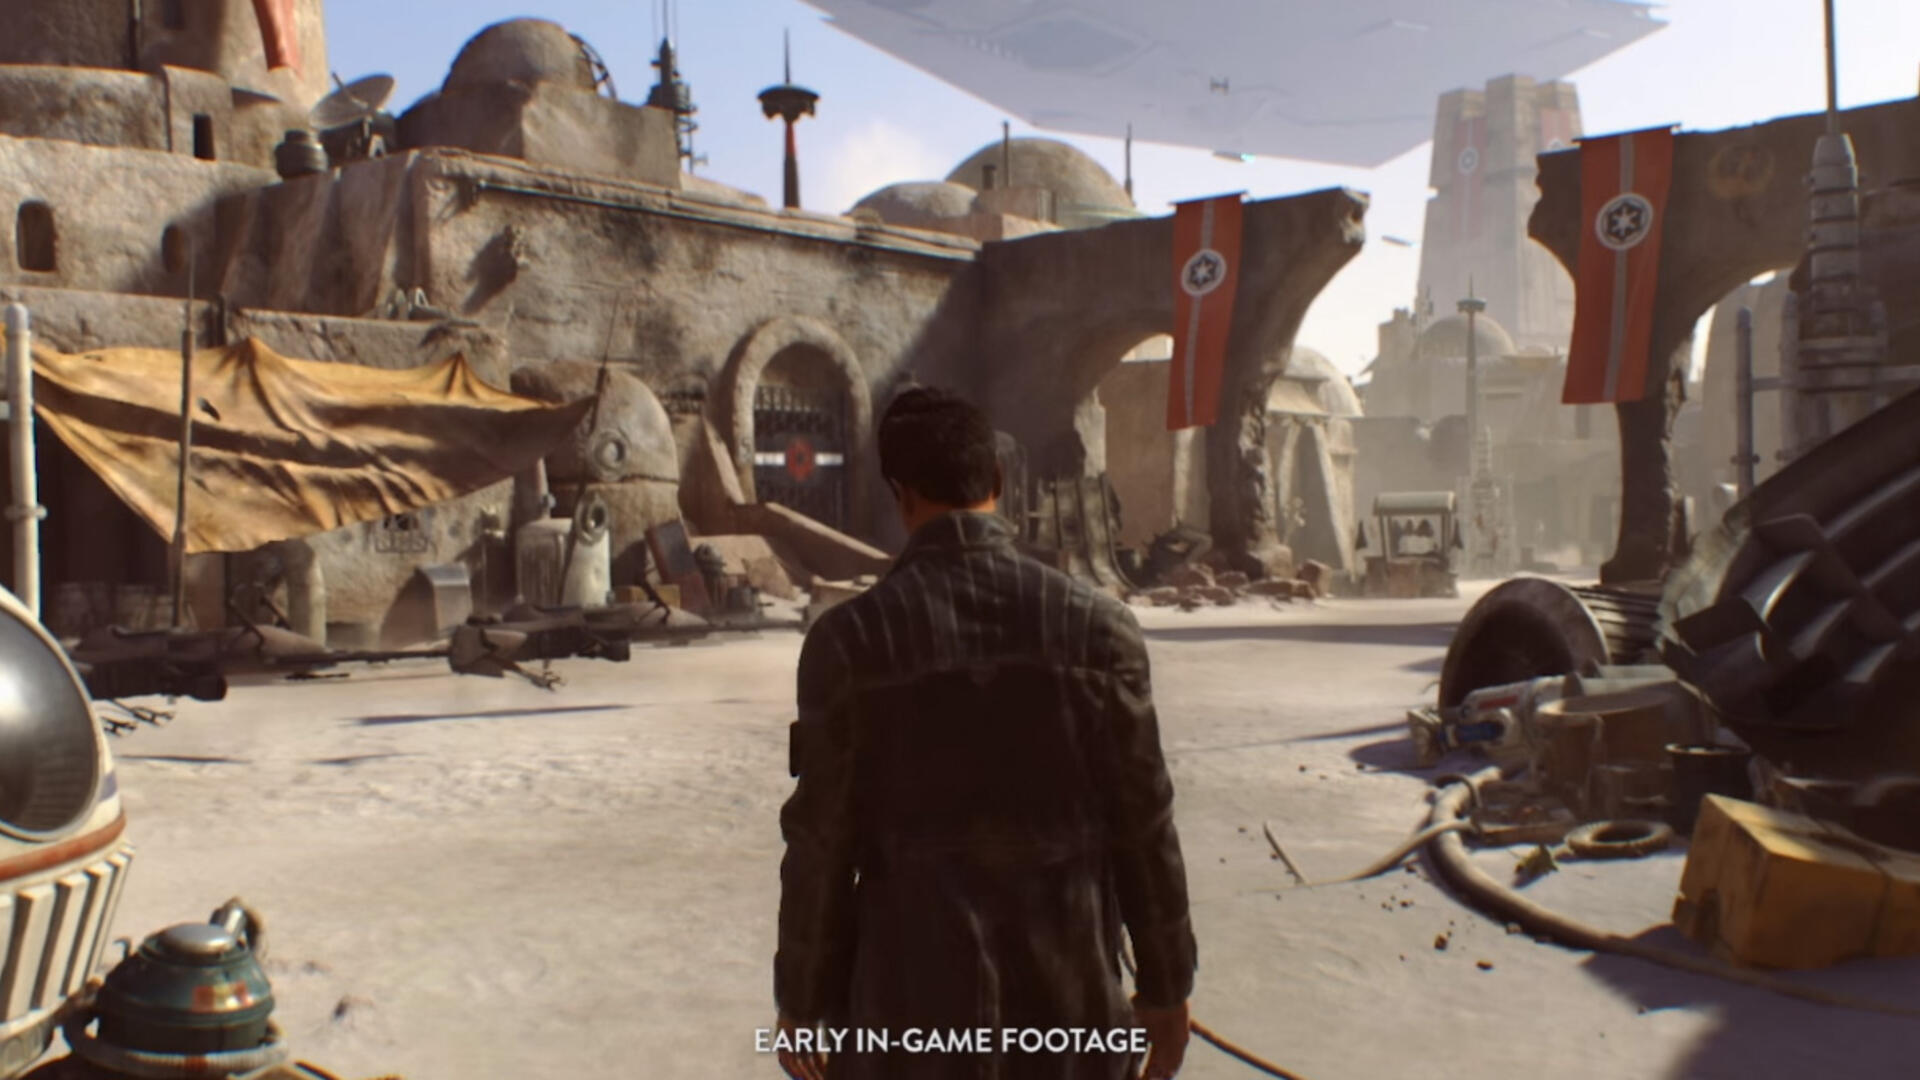 EA All But Announces the Visceral Star Wars Game Will Become a Games-as-Service Title